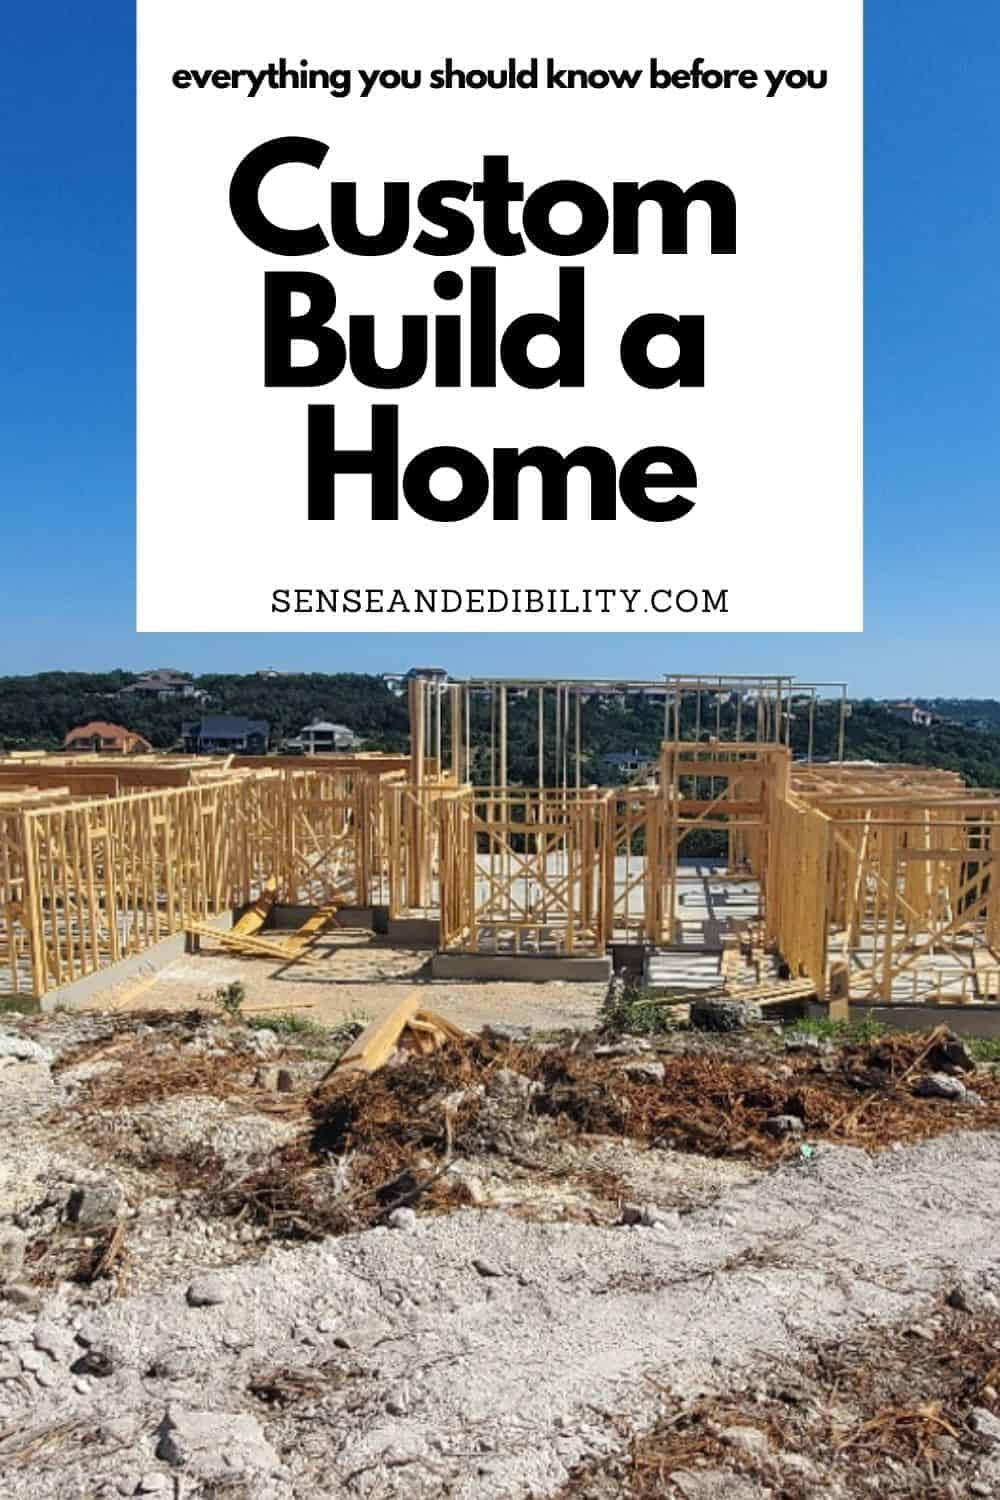 Does building a custom home sound like a great idea to you? It did to us as well. Here's our first-hand advice after our custom home build experience. #newhome #newhouse #custombuilthome #customhome #buildingahouse #realestate #realtor #mortgage #financingahome #newhomebuild #semicustomhome #vahomeloan #buildernightmare #newhomewoes #howtocustombuildahome #shouldIcustombuildahome #homebuildingadvice via @ediblesense